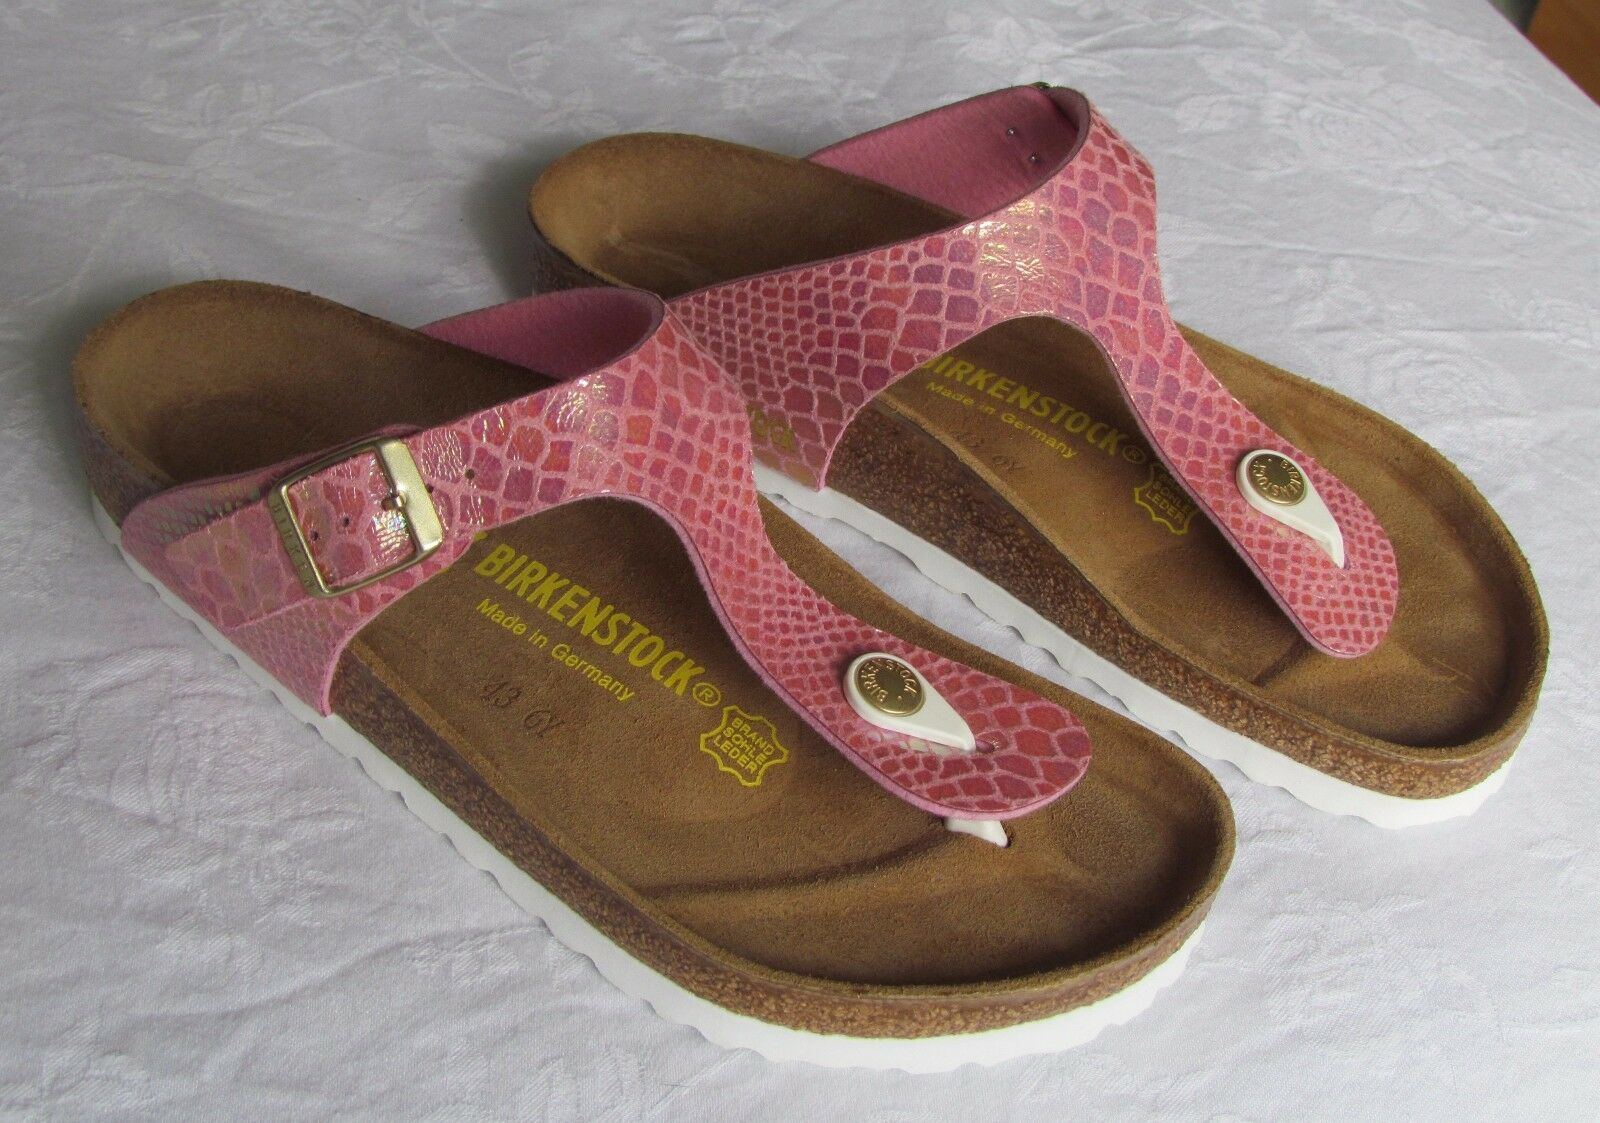 Último gran descuento NEW Birkenstock Gizeh Ladies Pink Shiny Snake Skin Effect Mules Sandals Size 4.5